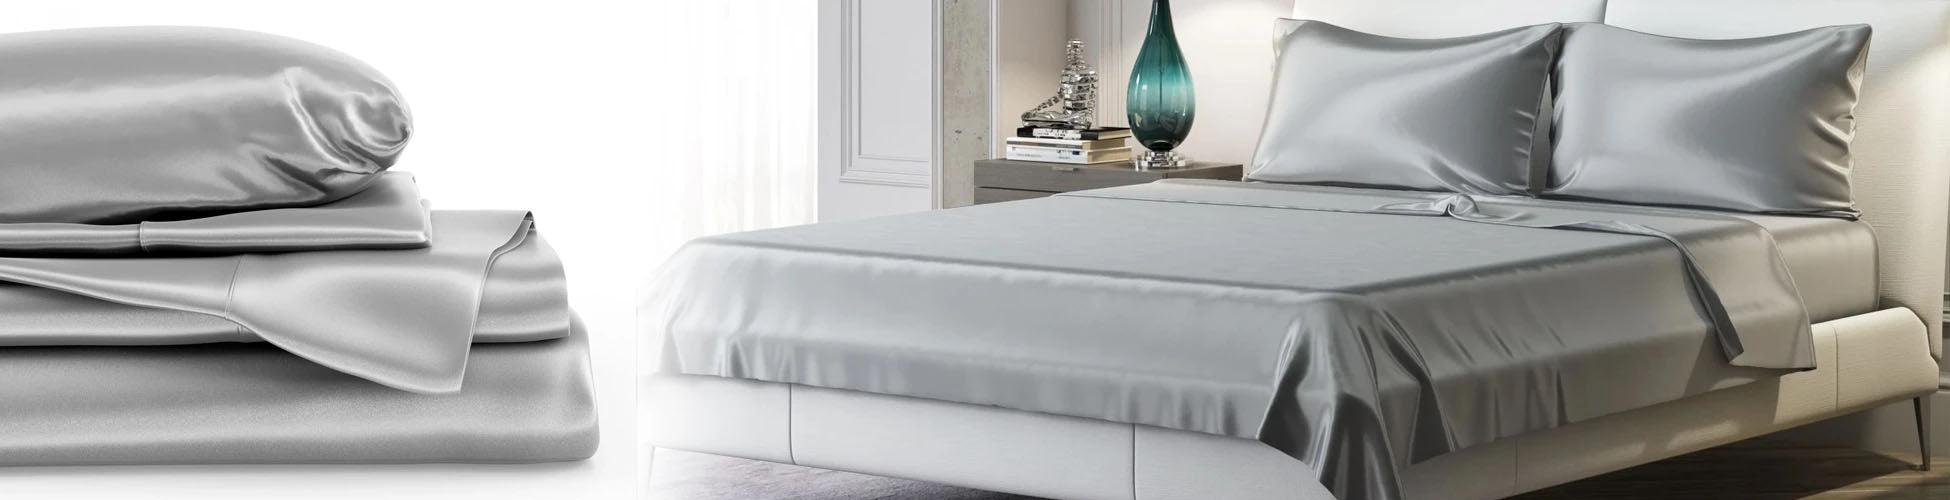 Bed outfitted with high quality silver silk sheet from Mulberry Park Silks